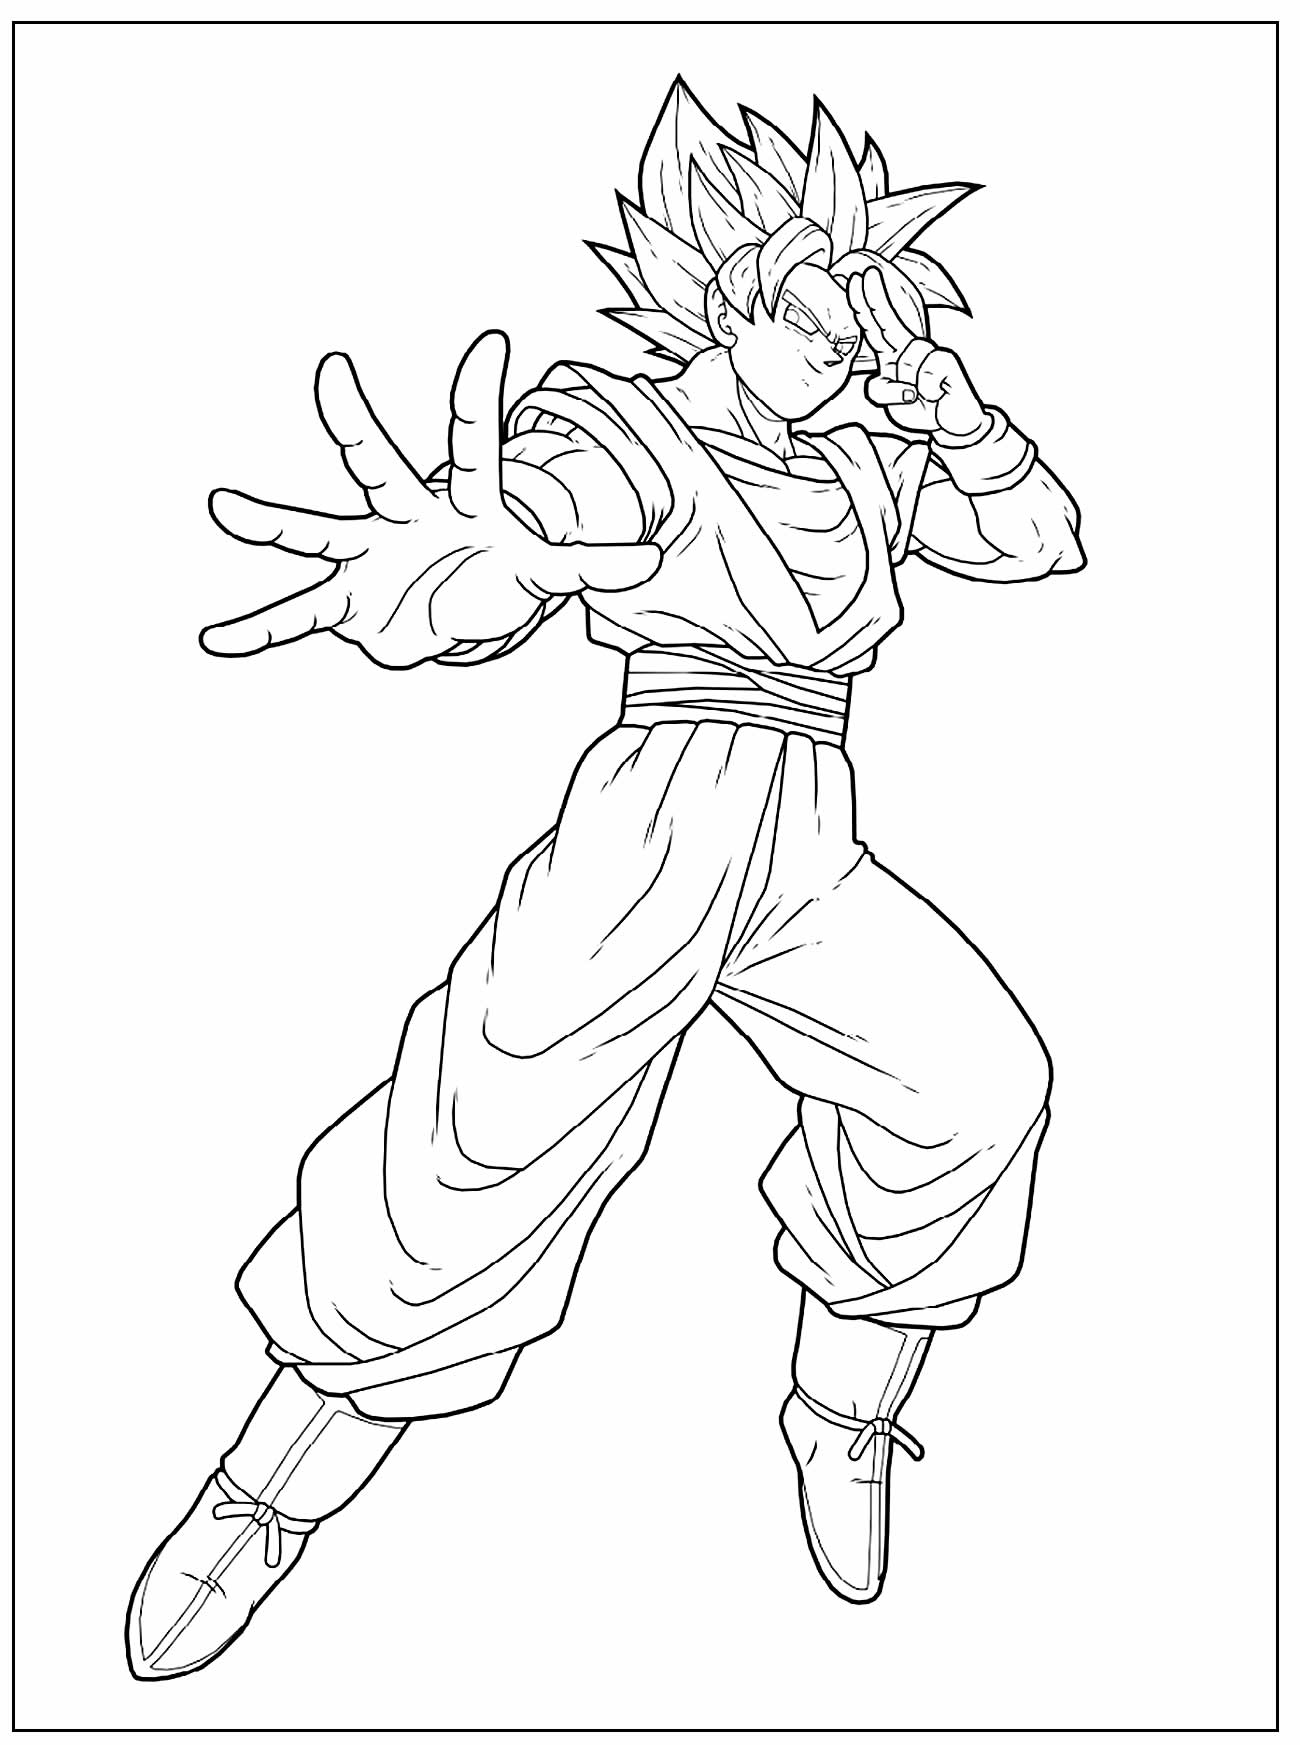 Drawing to paint by Goku